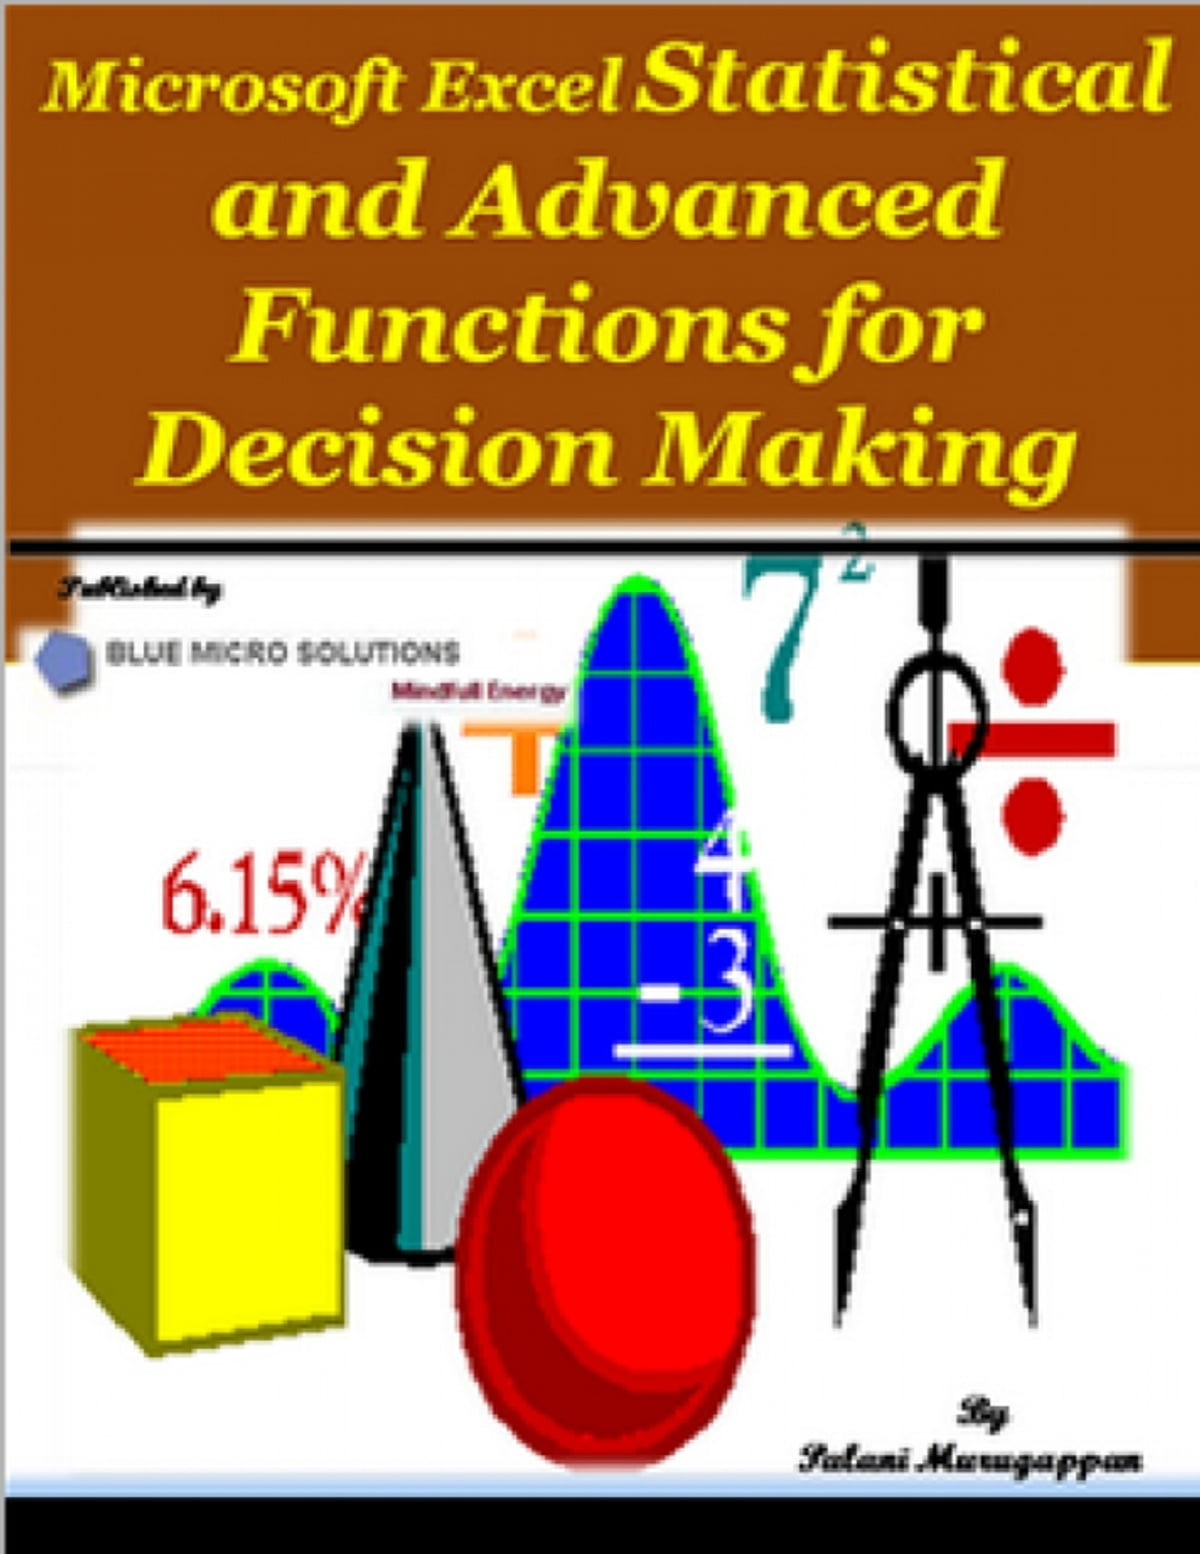 an introduction to the analysis of career decision making Introduction to how to choose a career decision making once you have done some preliminary self analysis.